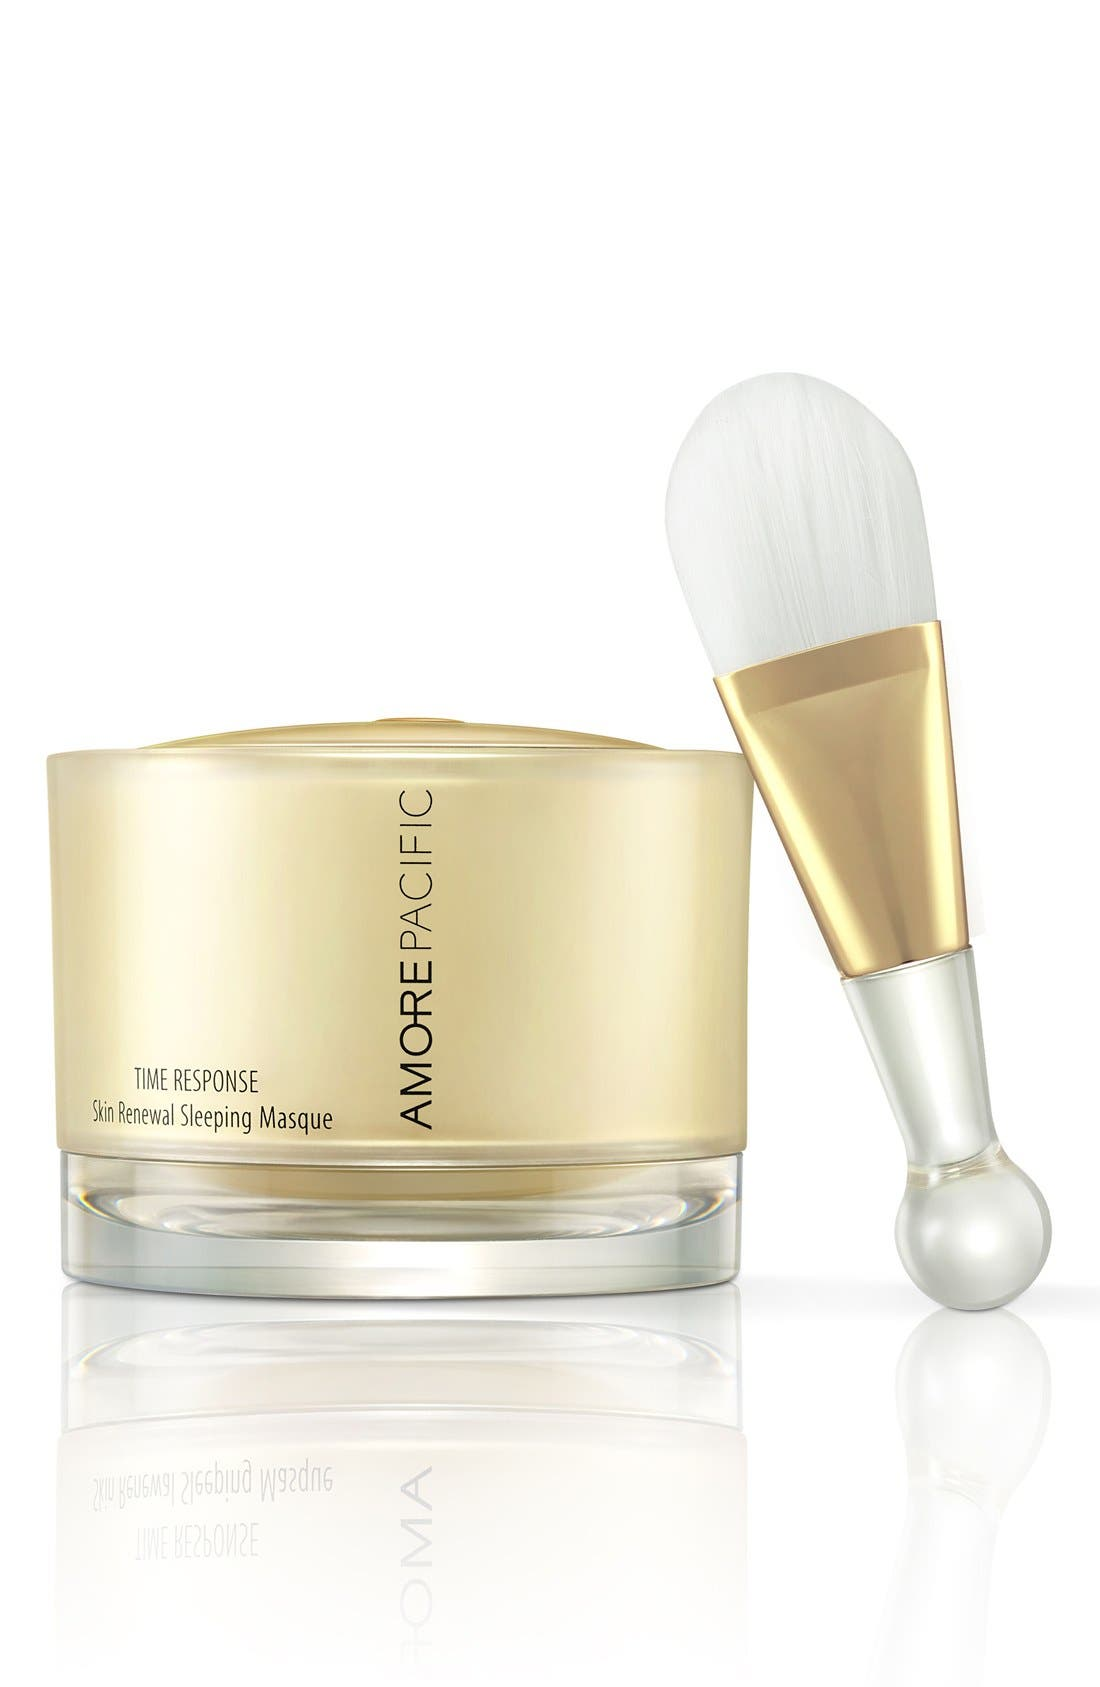 AMOREPACIFIC 'Time Response' Skin Renewal Sleeping Masque